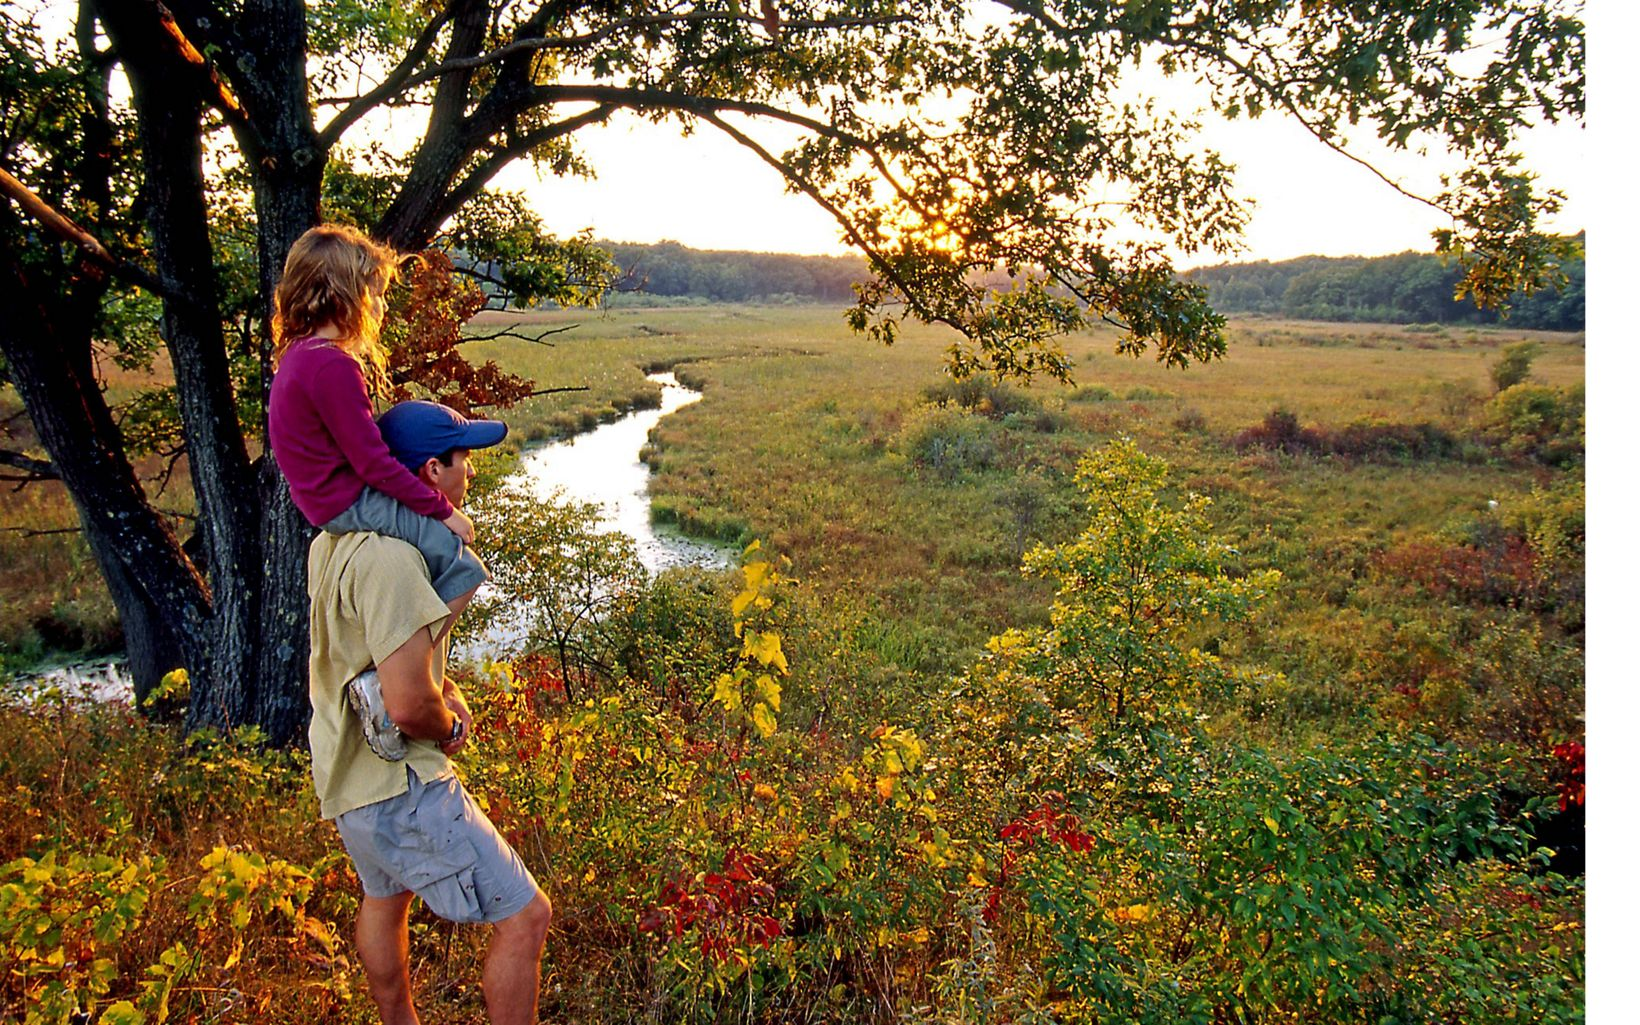 Father with young daughter on shoulders under tree looking out over wetlands in the fall.